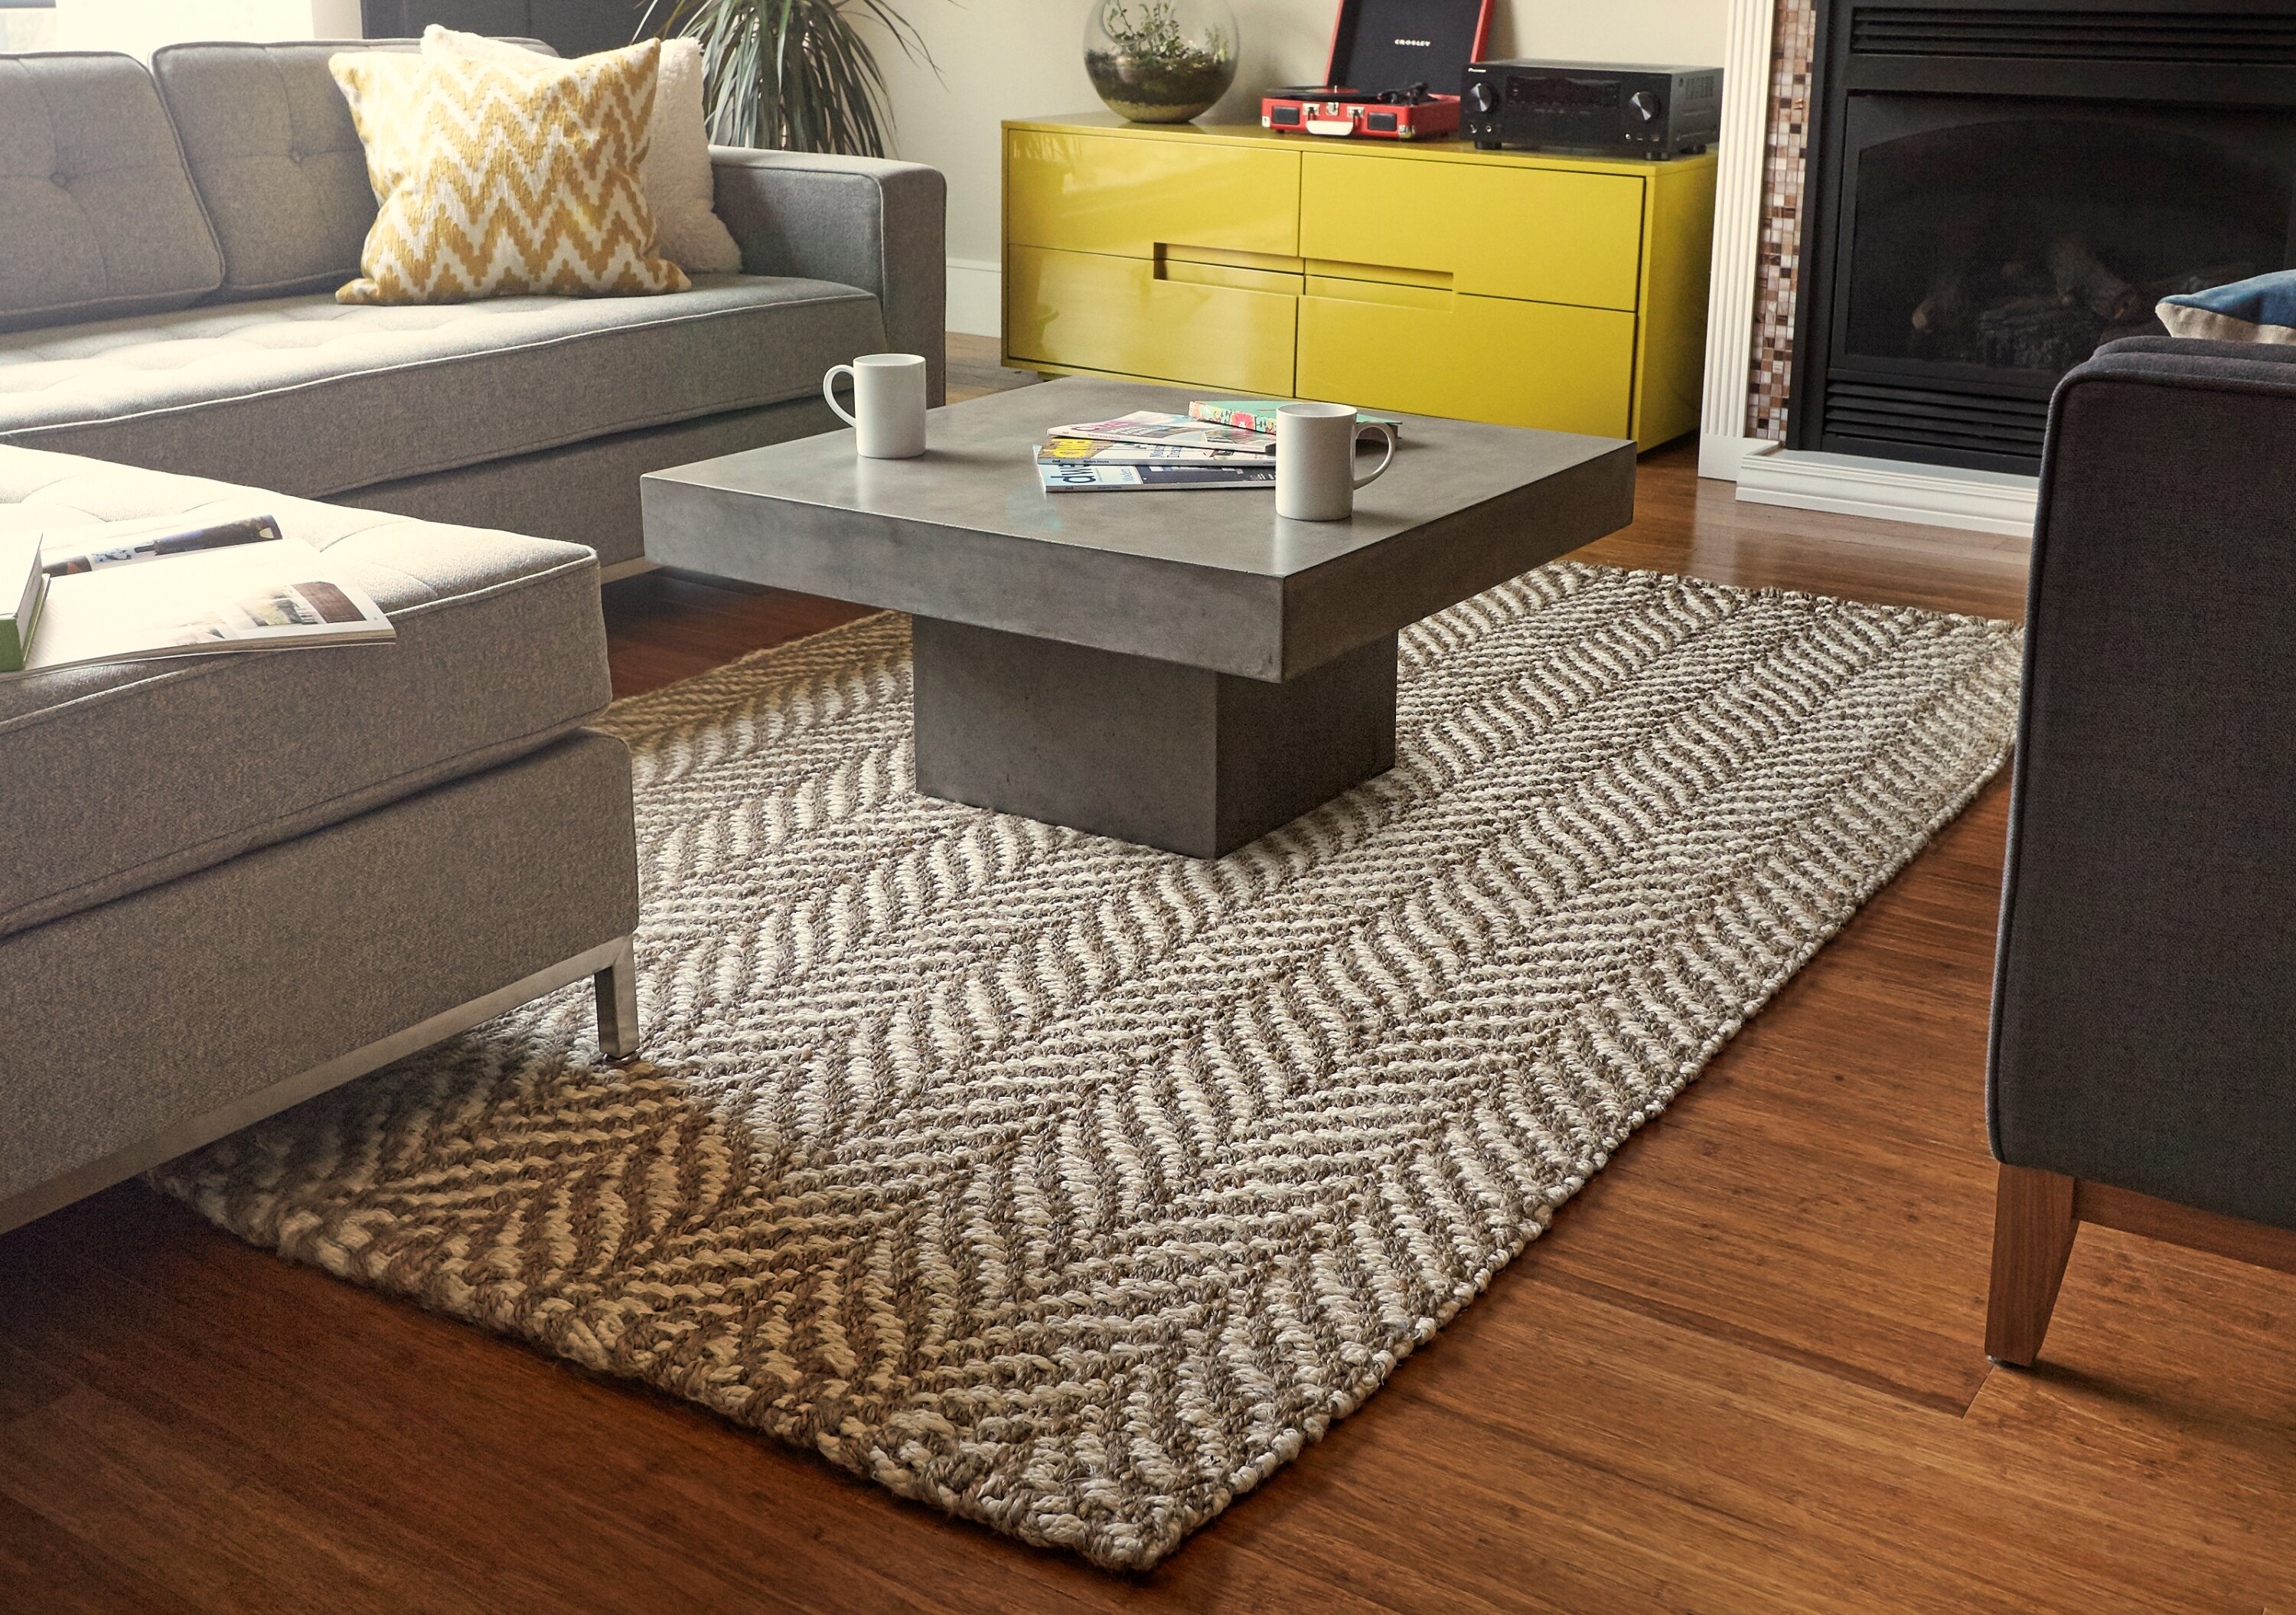 rug and idea splendid of lovely projects diamond size full gray nile threshold beige natural fretwork runner ru cabinet spaces living wonderful area dazzling decoration creative target rugs grey